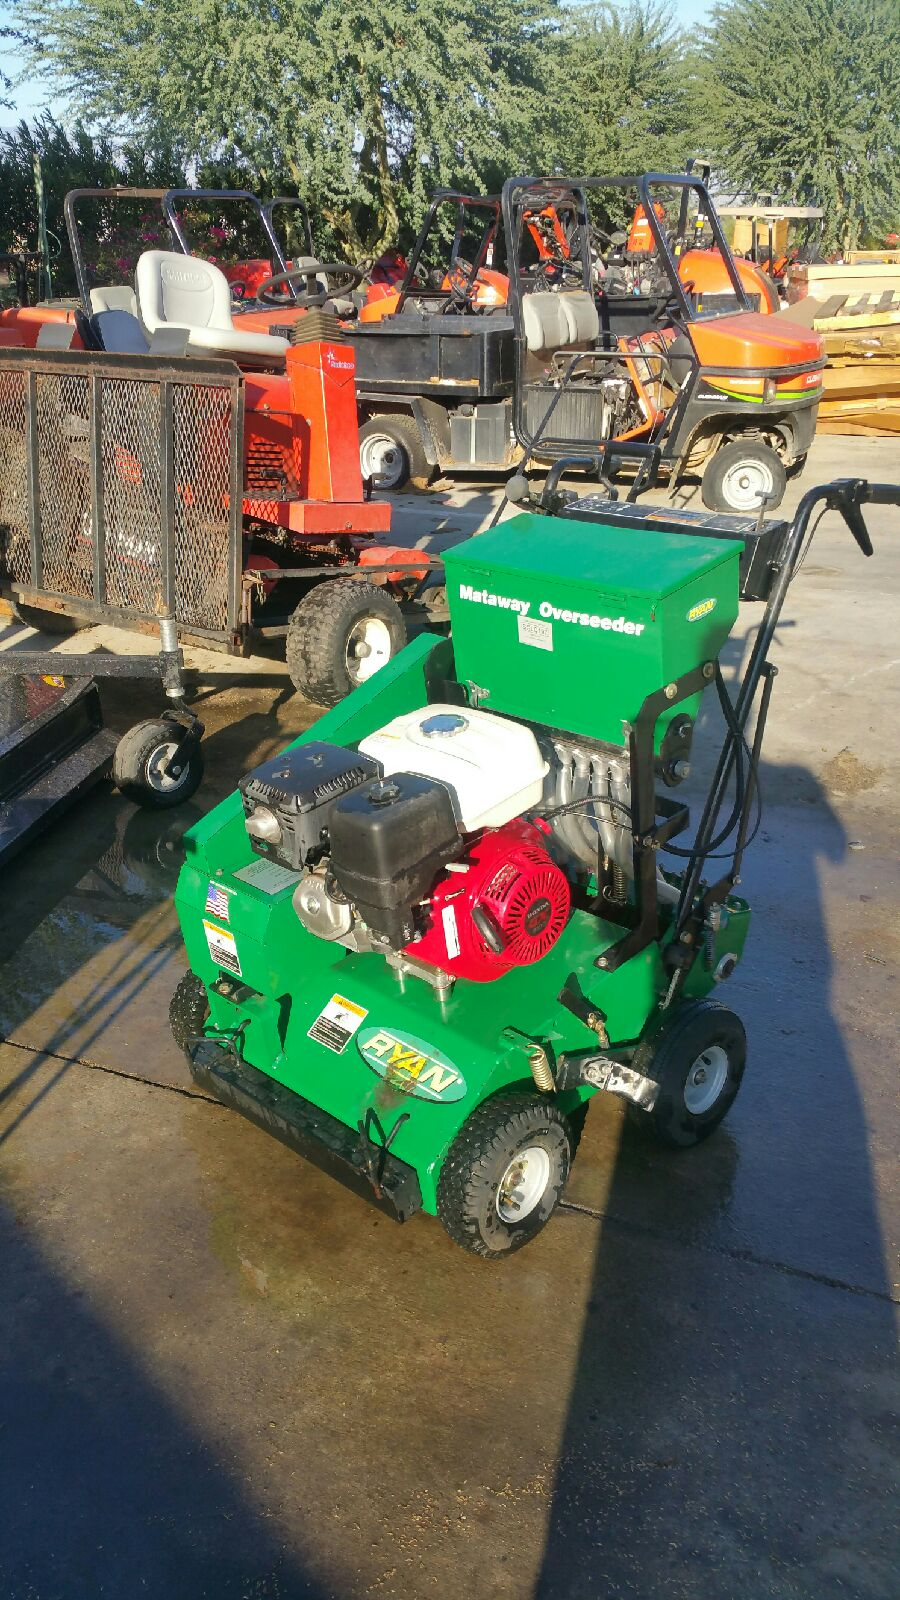 Aerator And Seeder : Used lawn aeration equipment seeder machine for sale